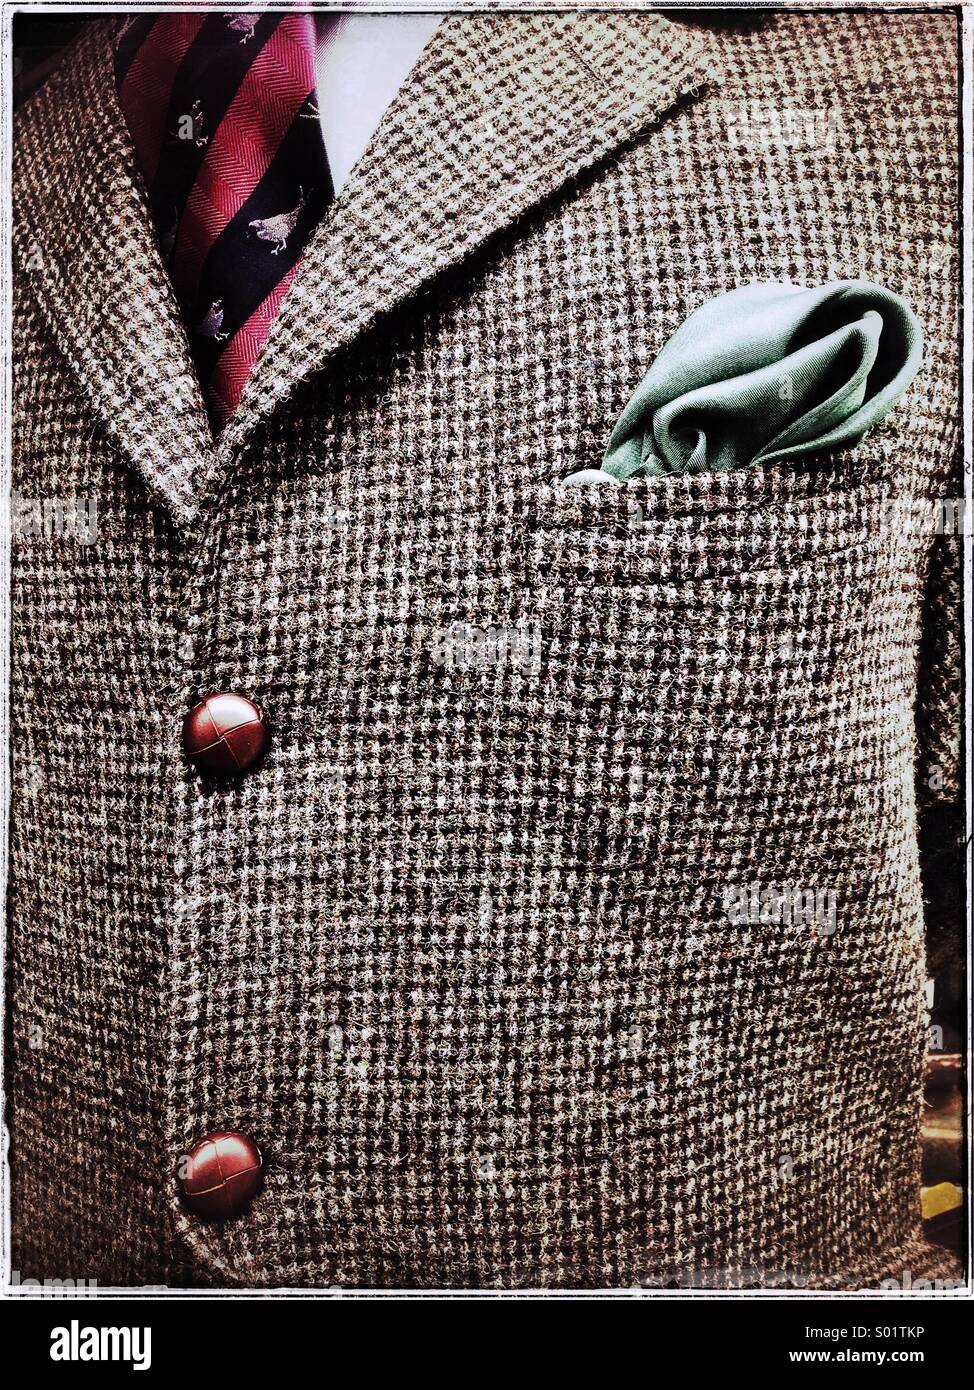 Gentleman's tweed jacket -close-up - Stock Image